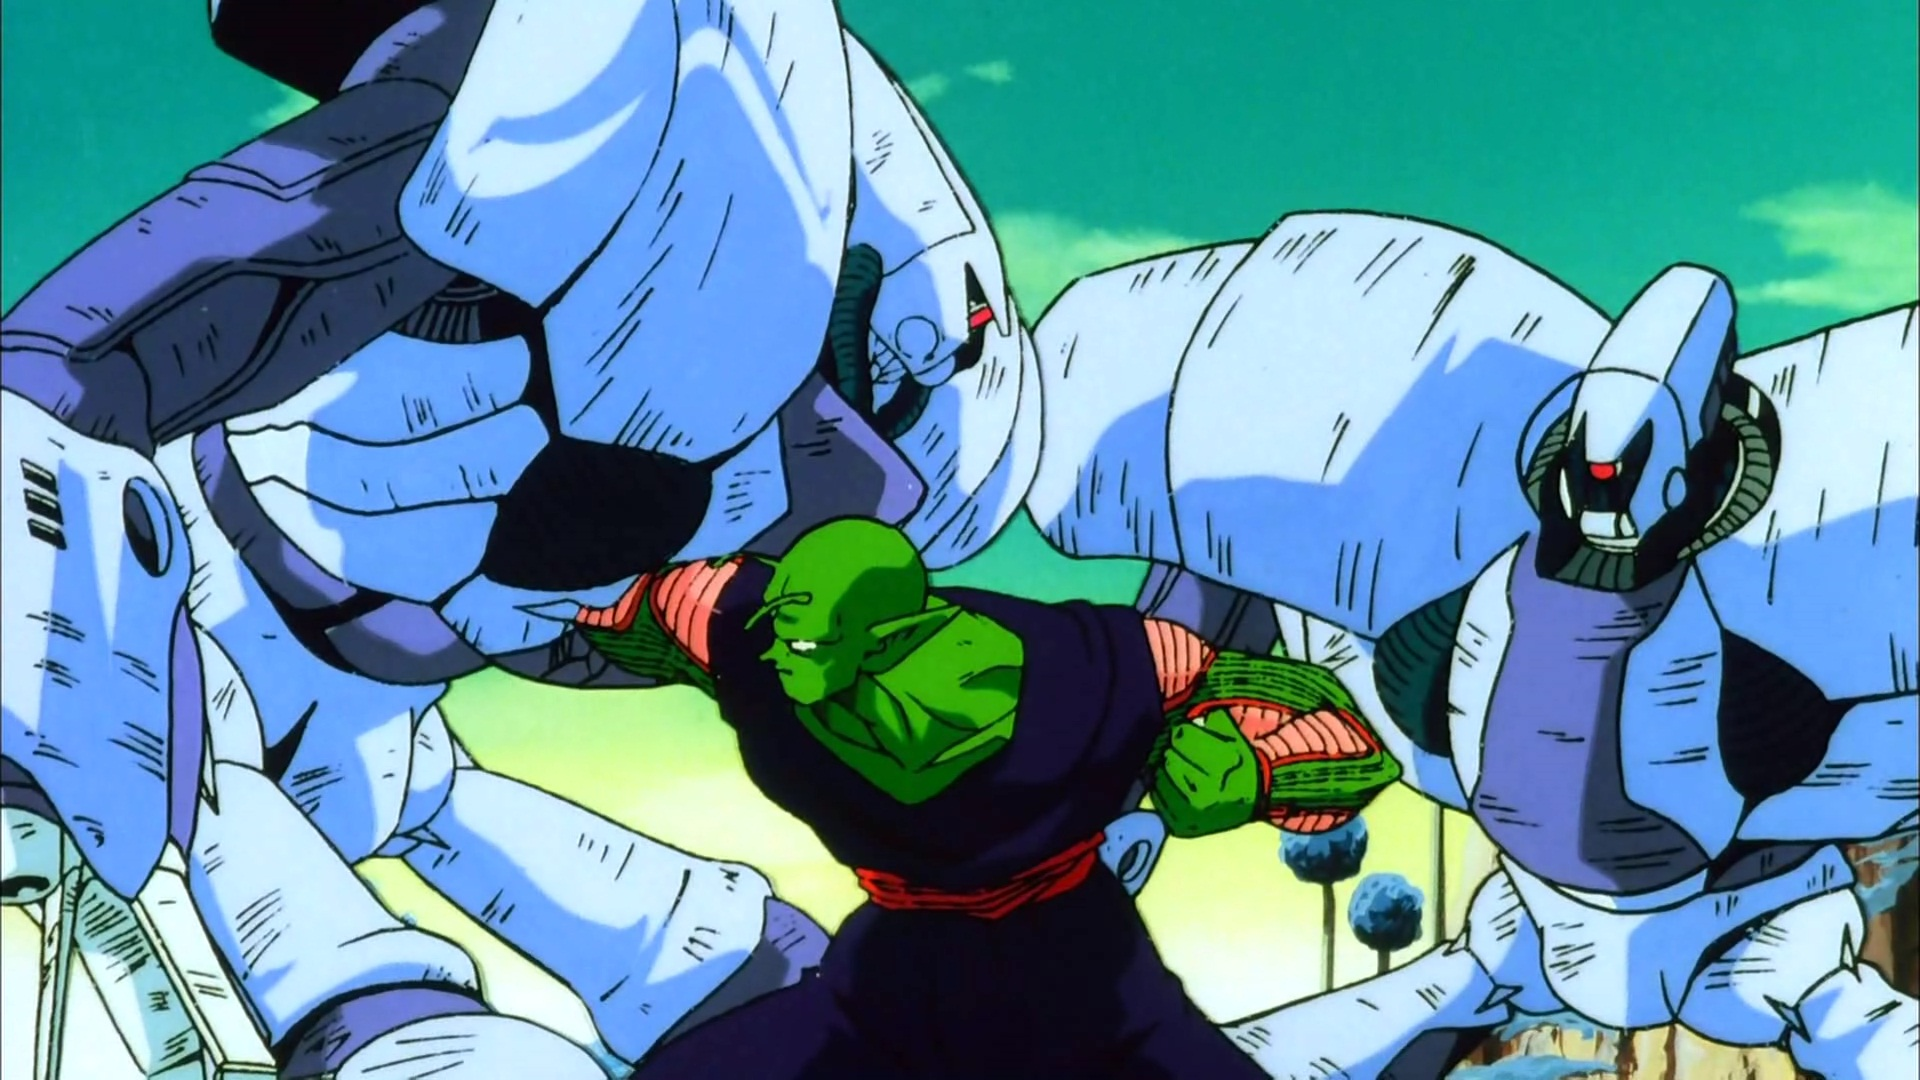 Piccolo_Punches_Robot_(Return_Of_Cooler).jpg